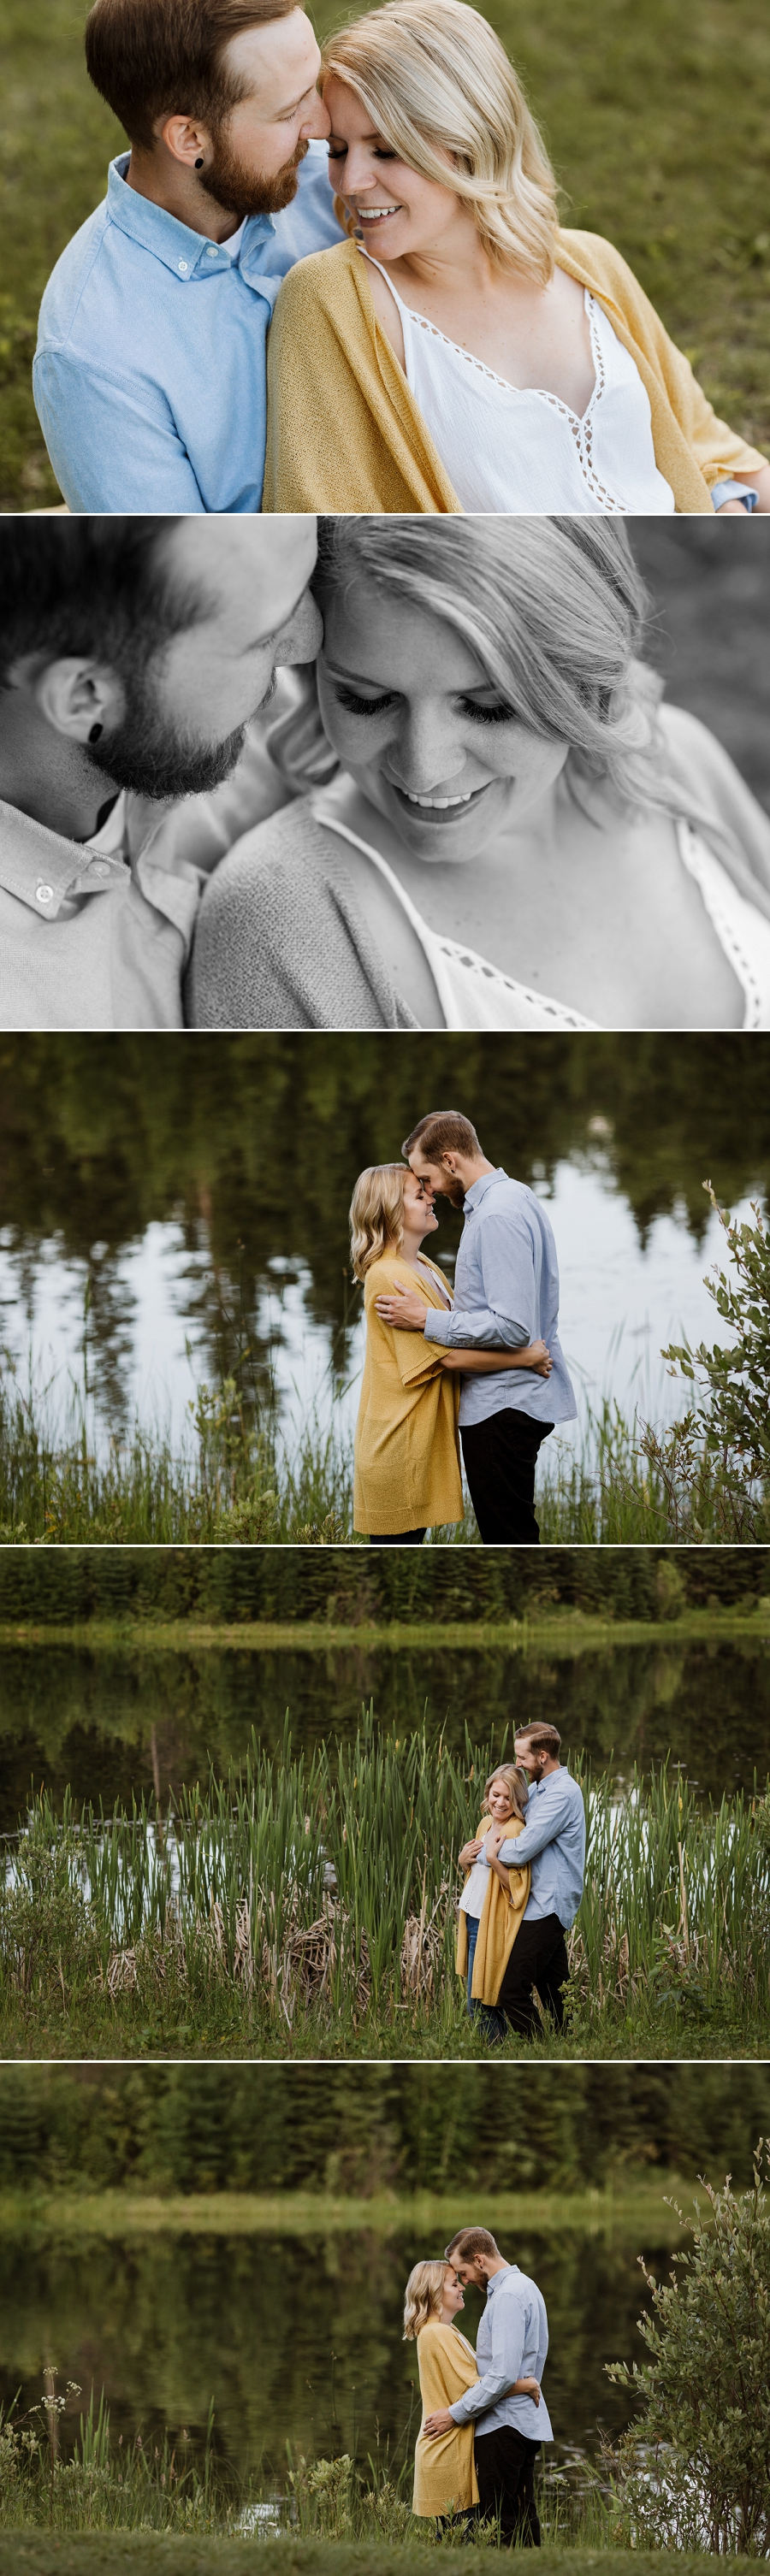 candle lake trout pond engagement session